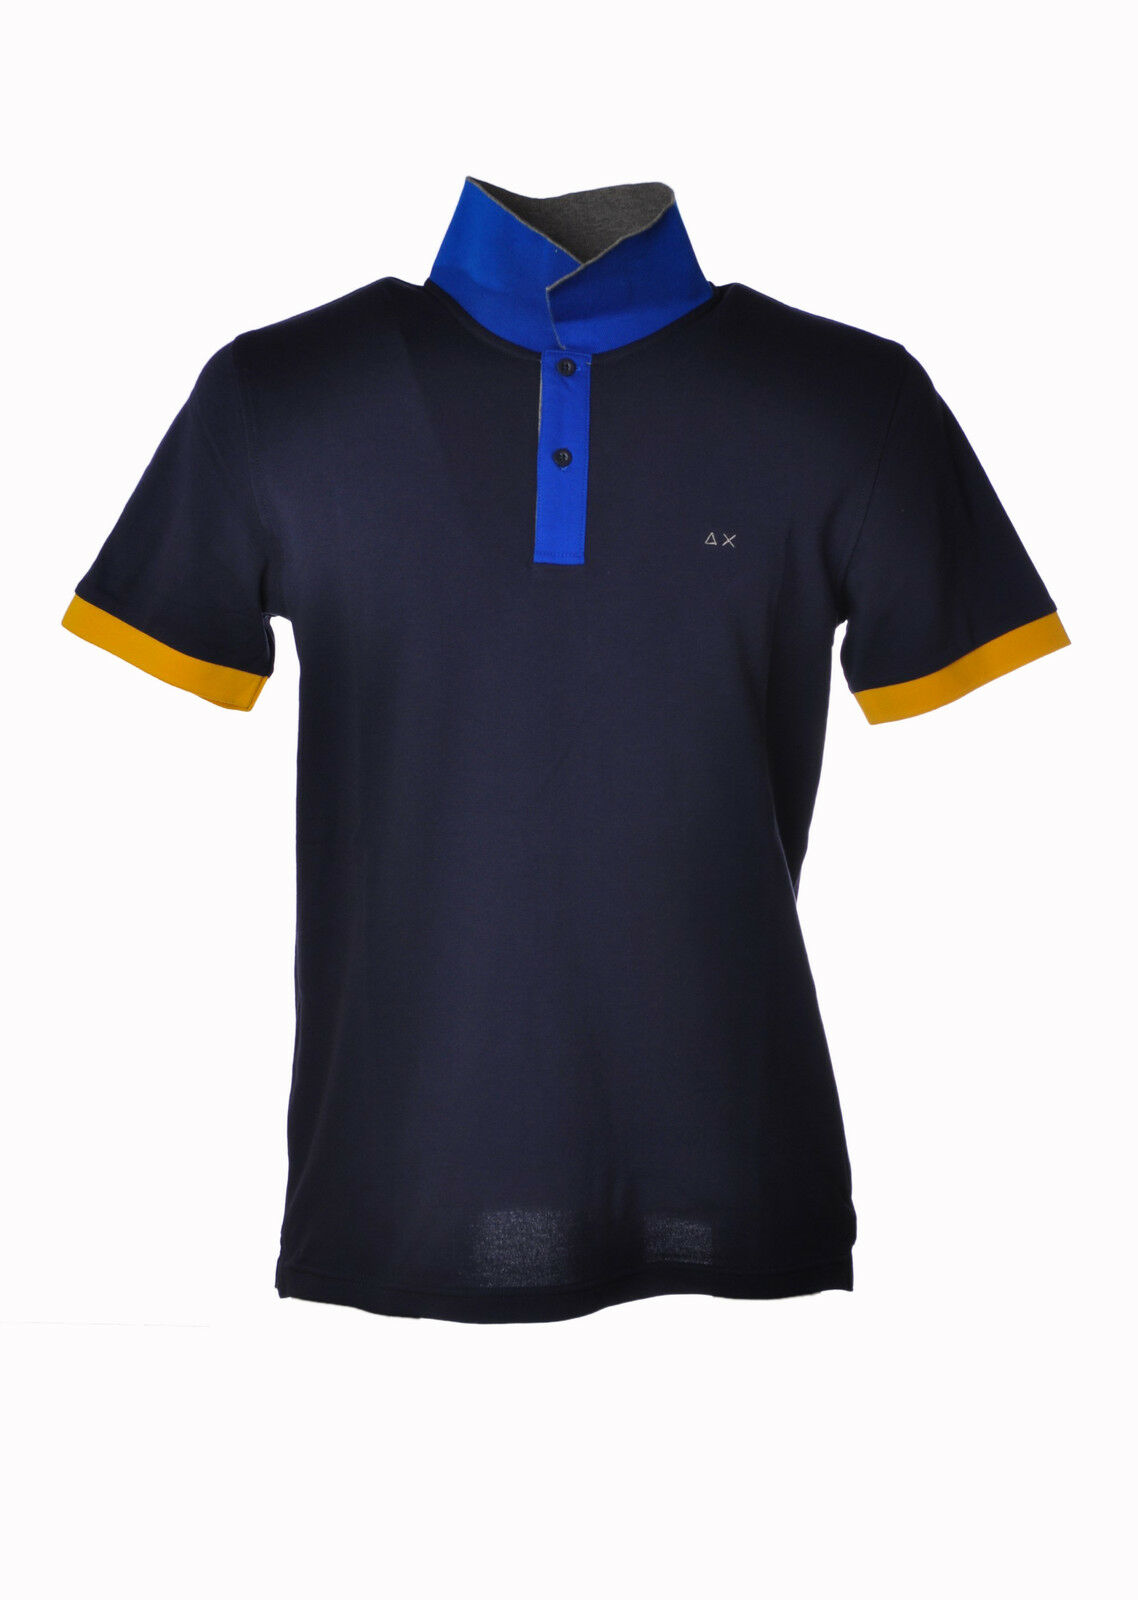 Sun 68 - Topwear-Polo - Man - bluee - 3199806C194955